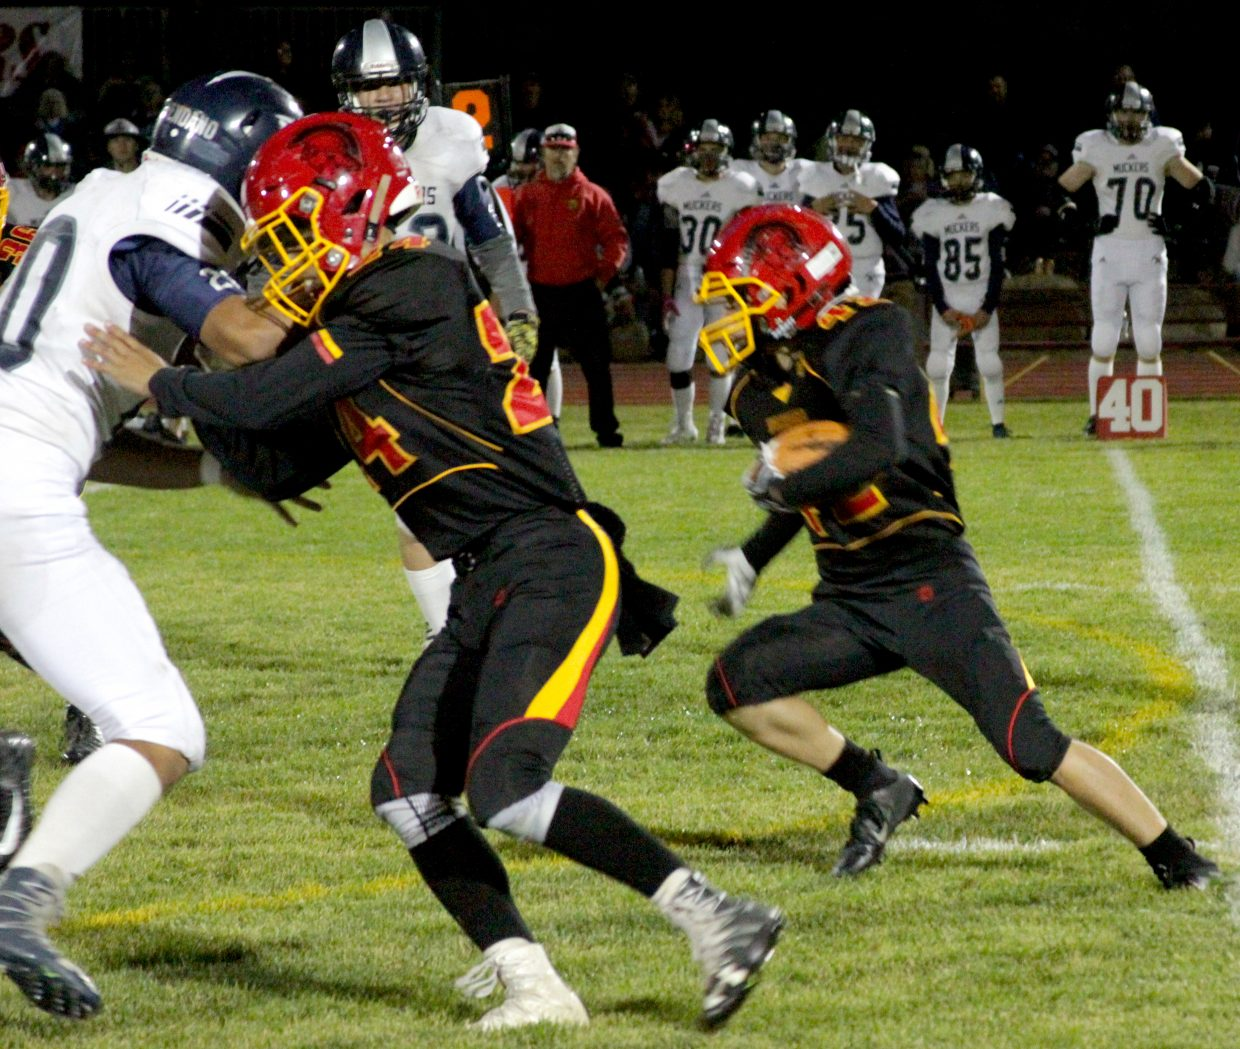 Whittell running back Jack White runs for a gain in the first half Friday night against Virginia City.